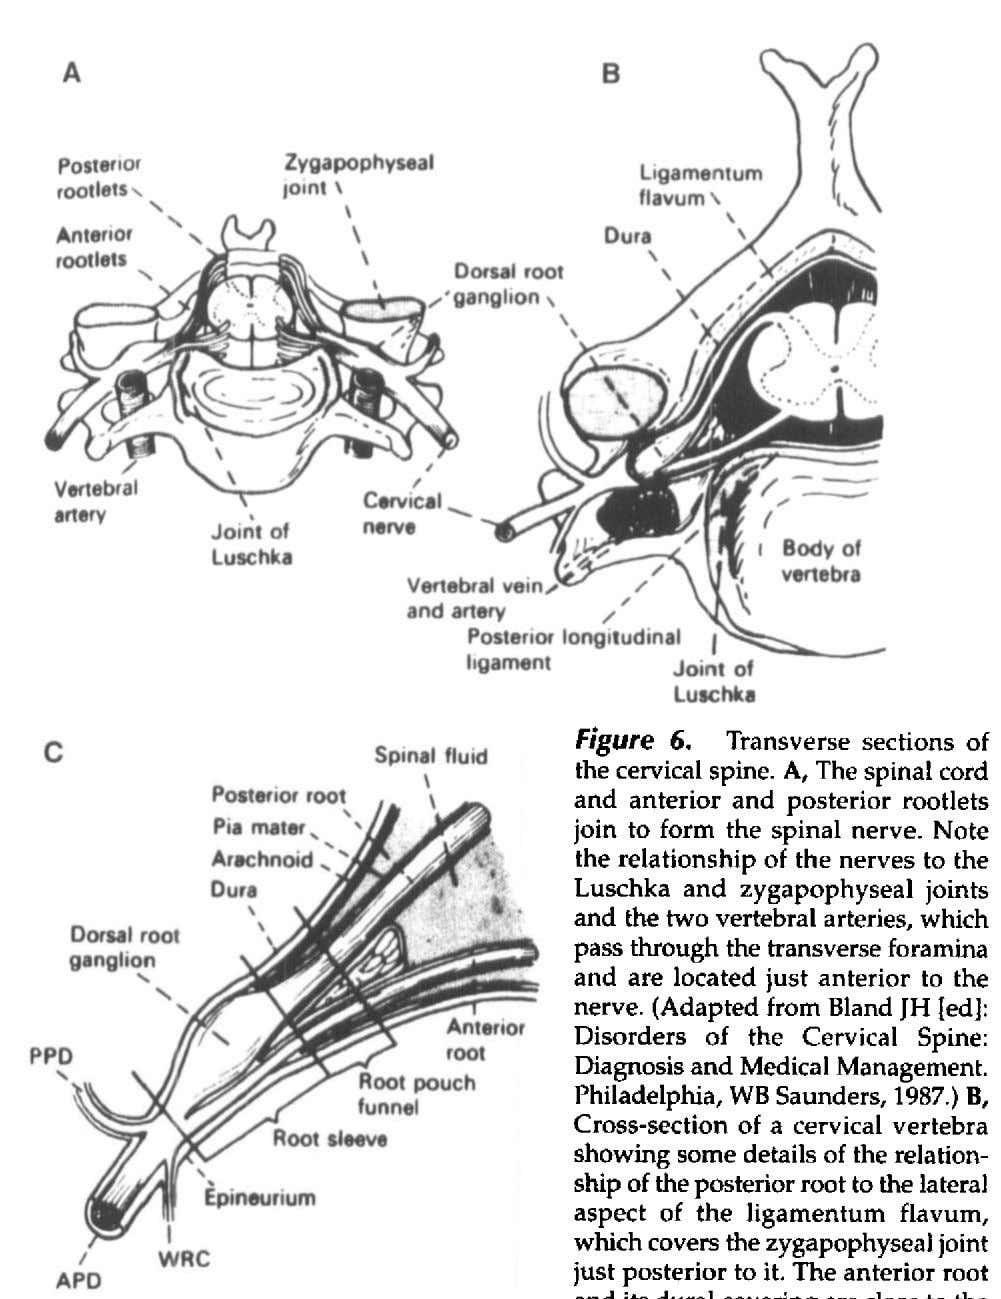 Figure 6. Transverse sections of the cervical spine. A, The spinal cord and anterior and